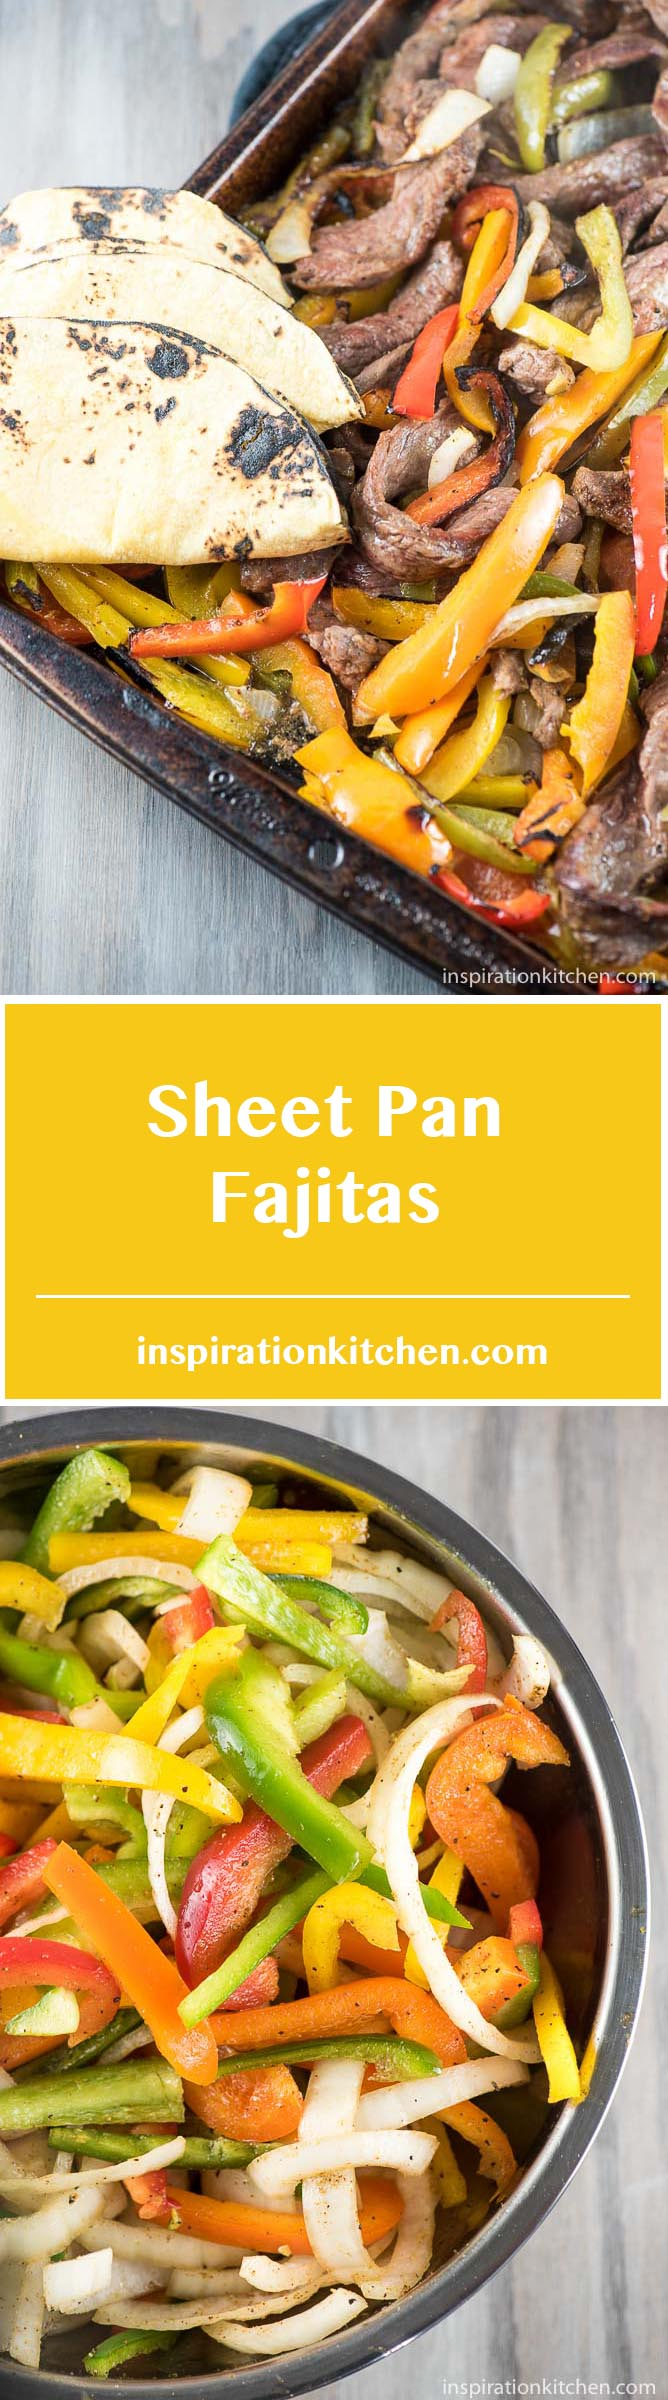 Sheet Pan Fajitas - inspirationkitchen.com